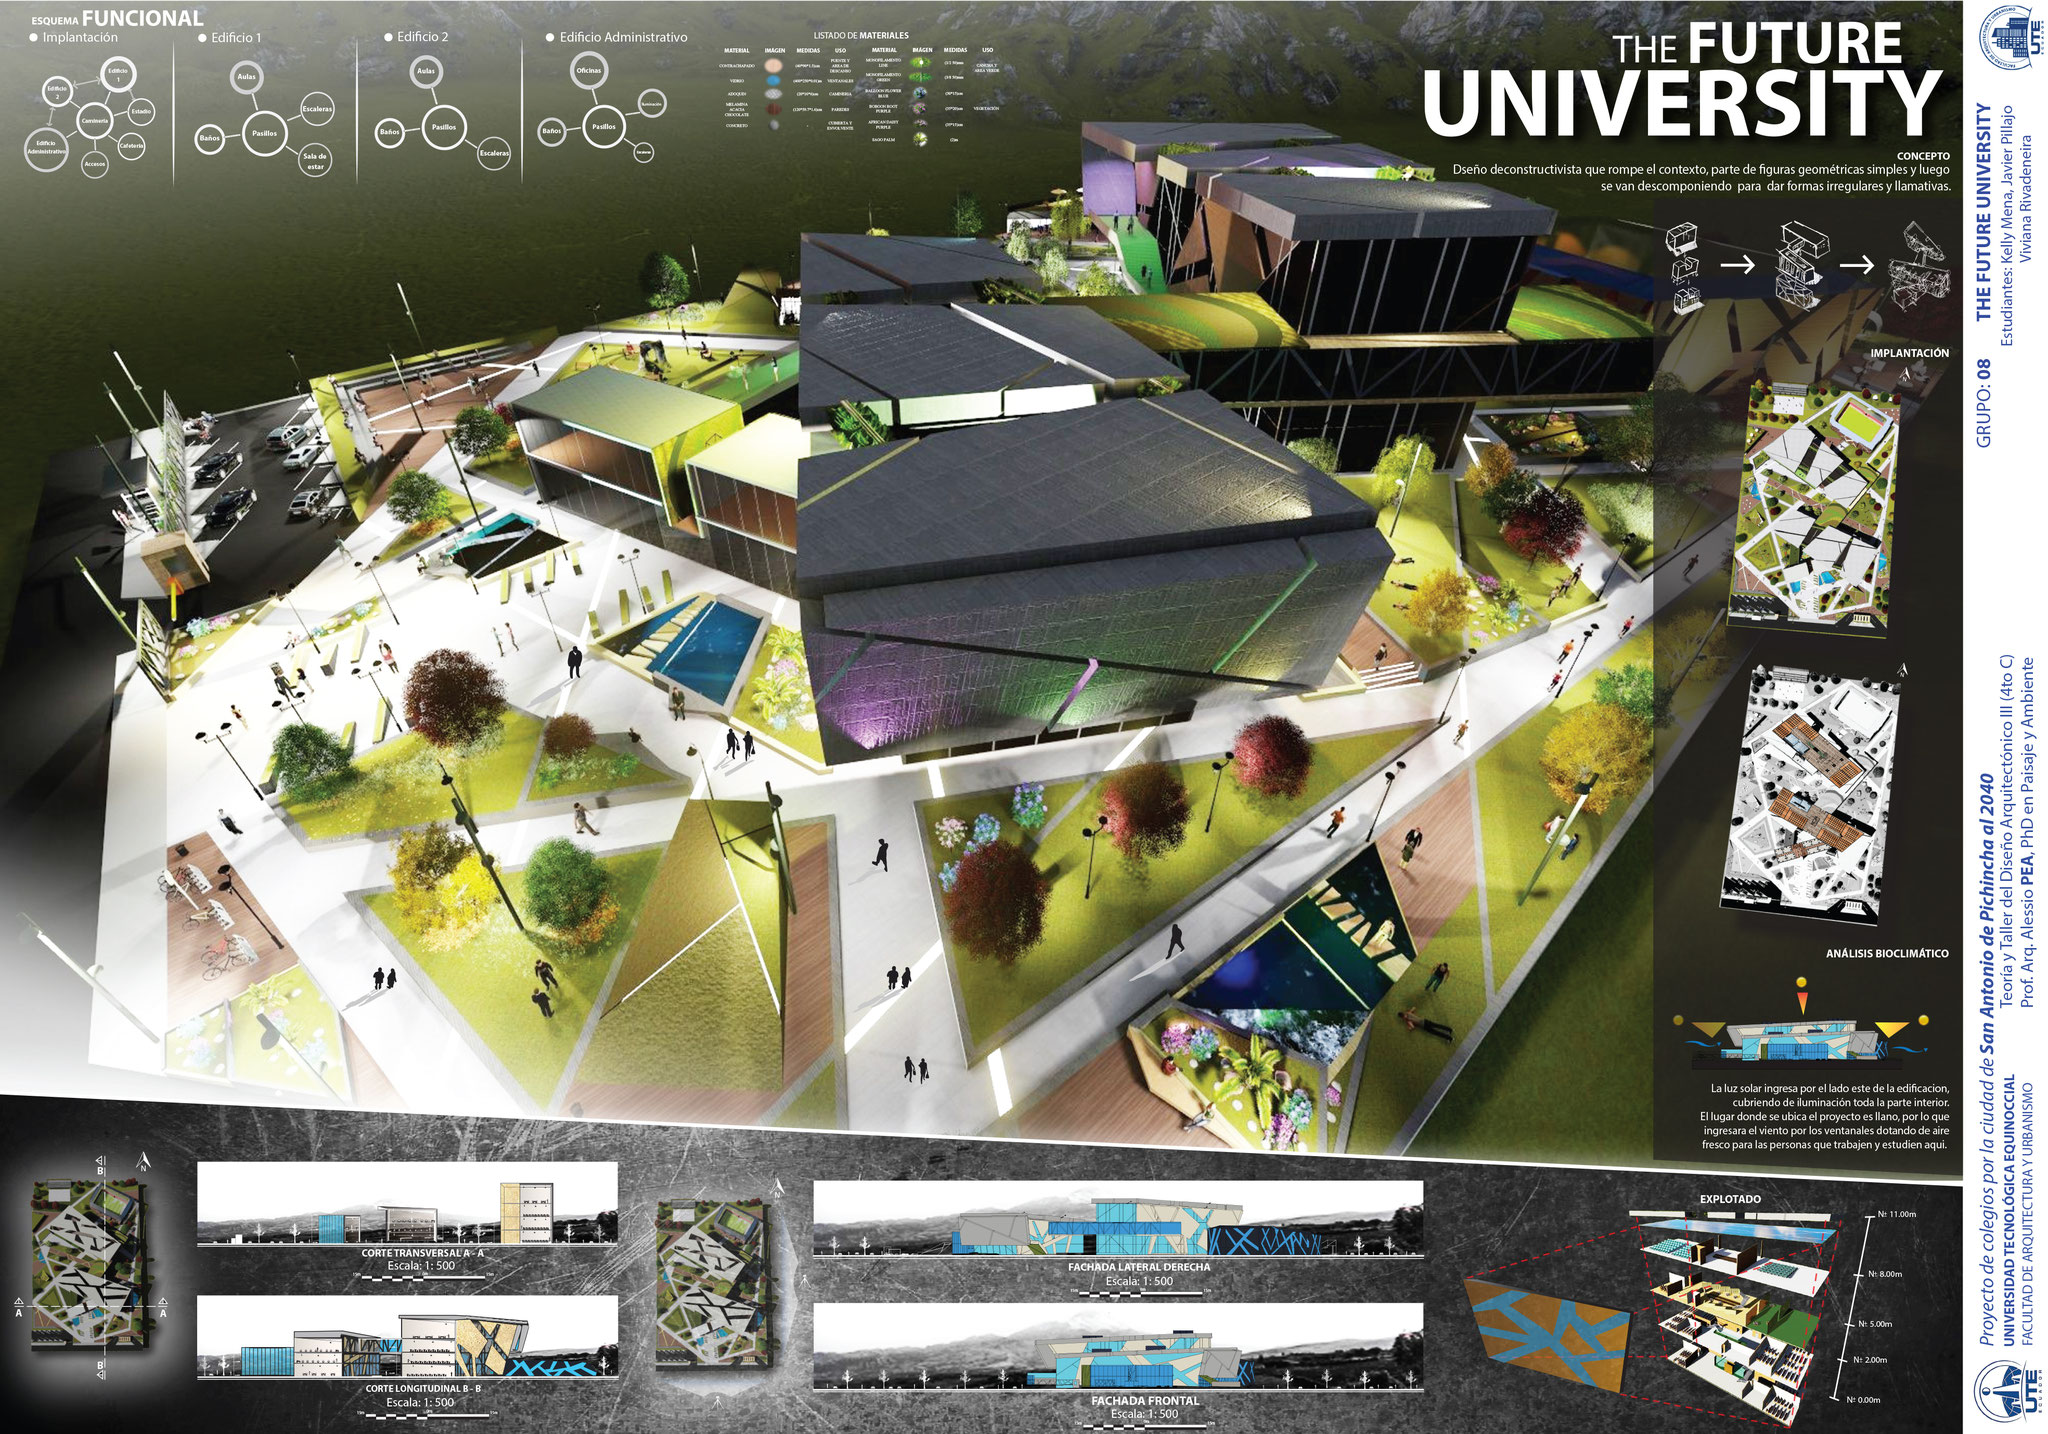 The future university - © A. Pea, K. Mena, J. Pillajo, V. Rivadeneira